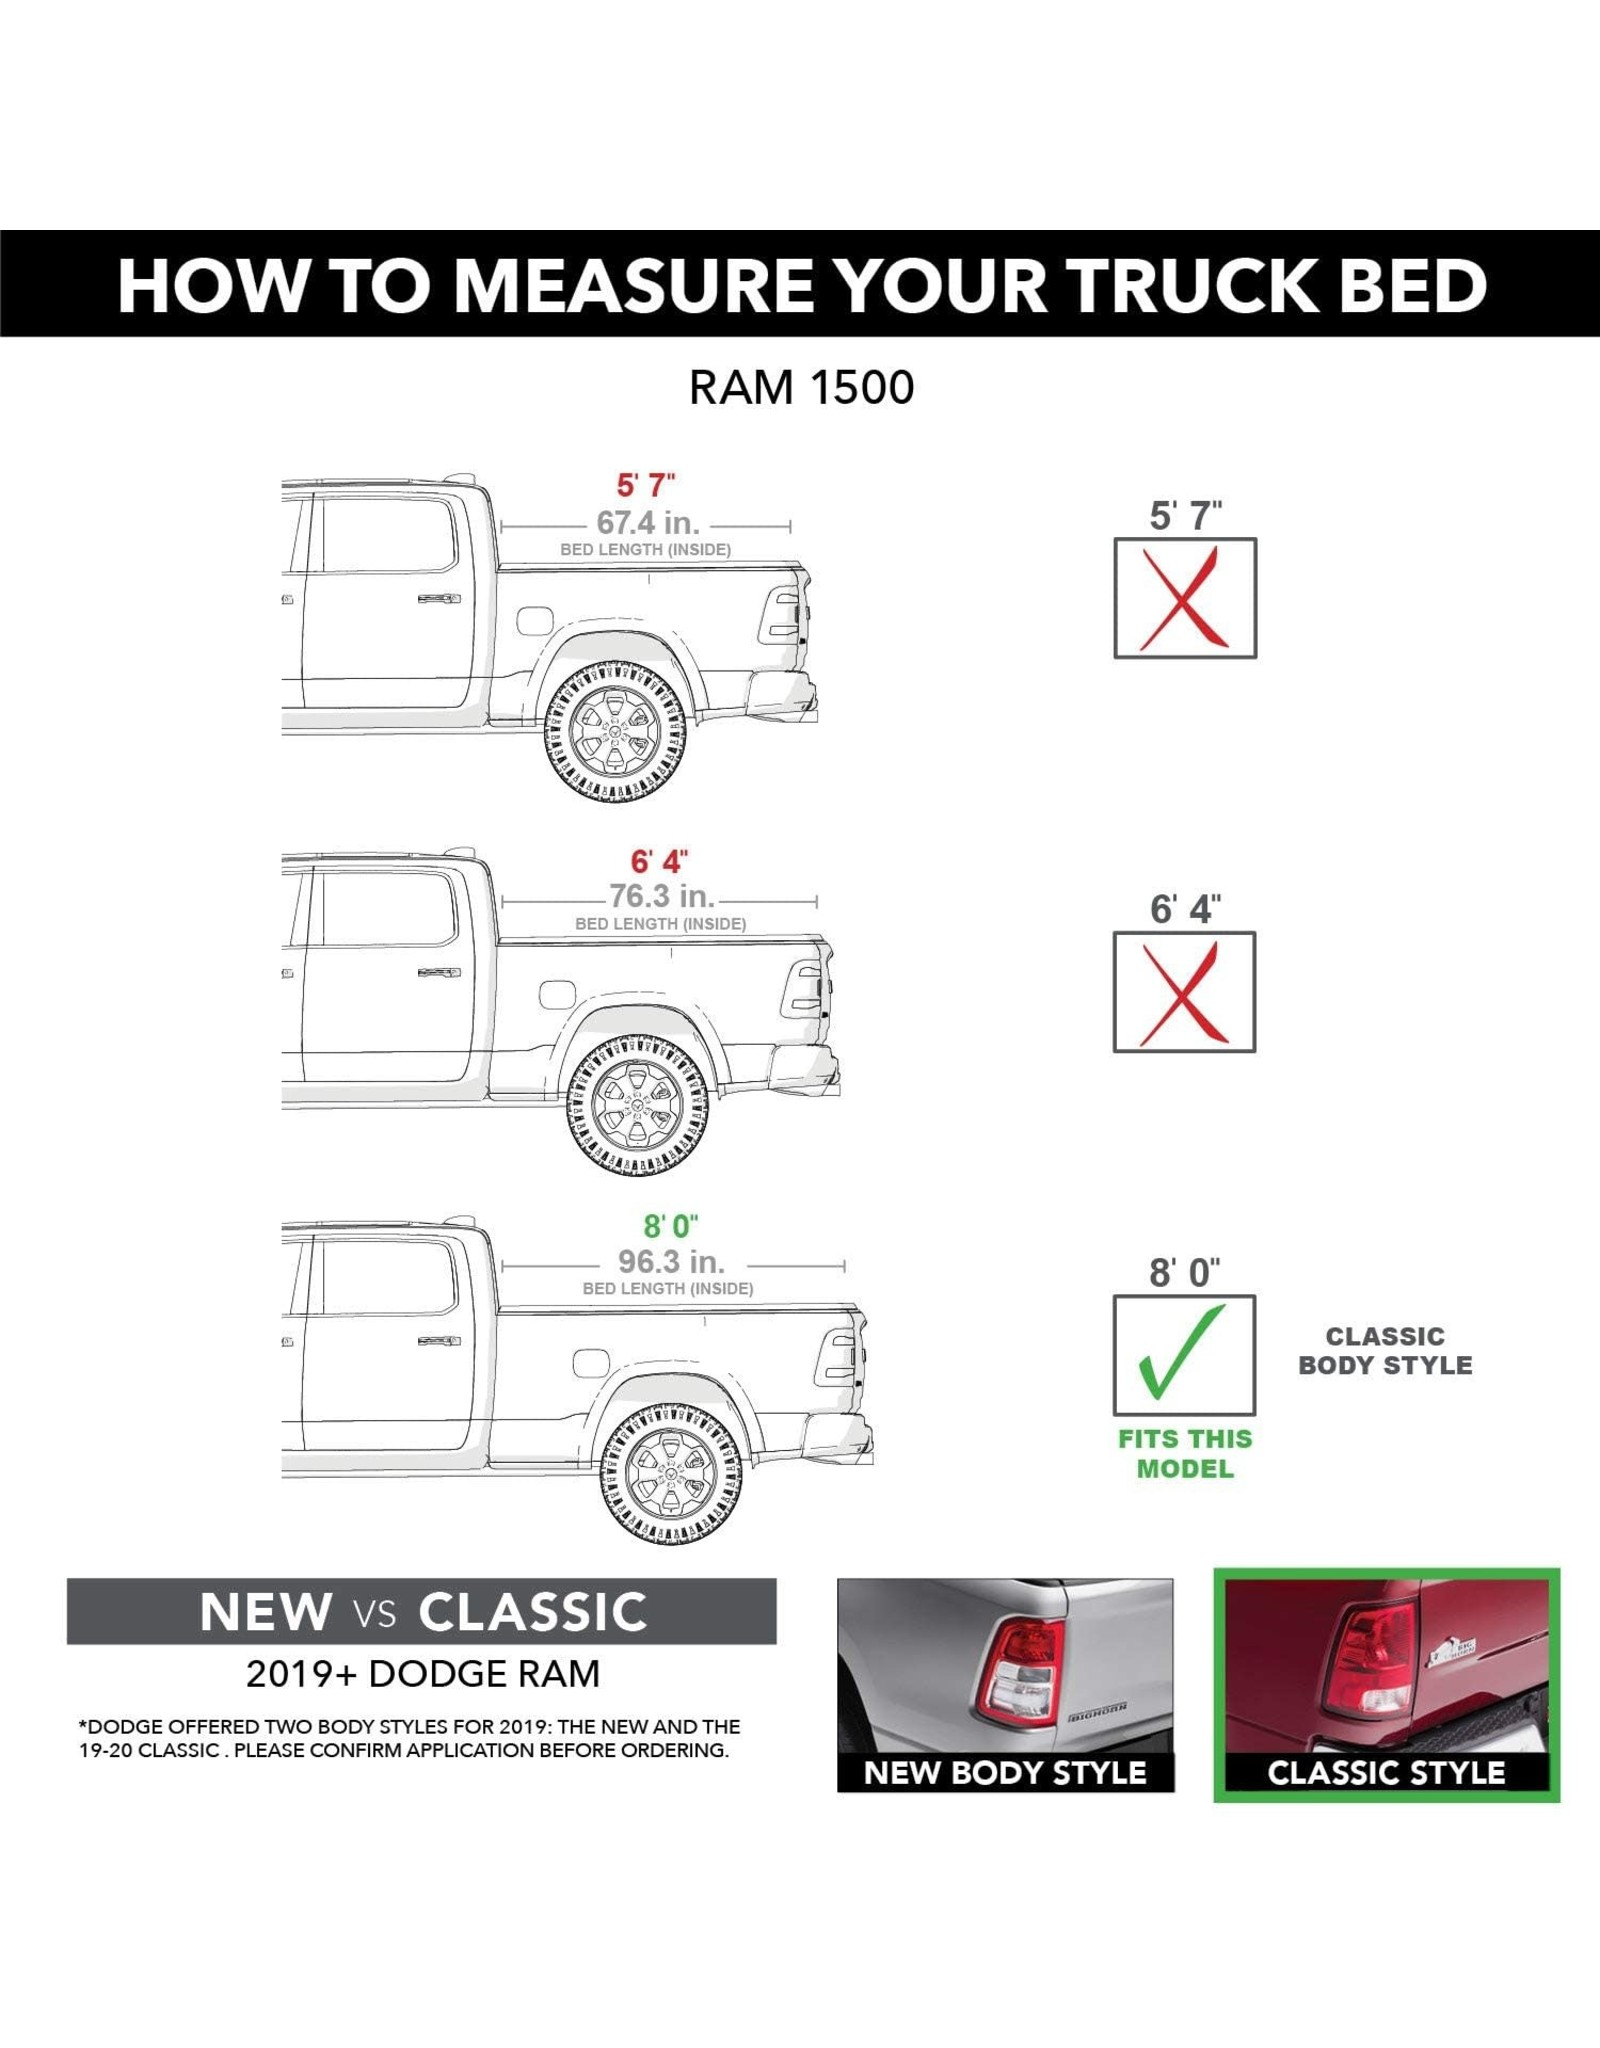 extang Extang Solid Fold 2.0 Hard Folding Truck Bed Tonneau Cover  83435  Fits 09-18, 19/20 Classic Dodge RAM 1500/2500/3500 8' Bed